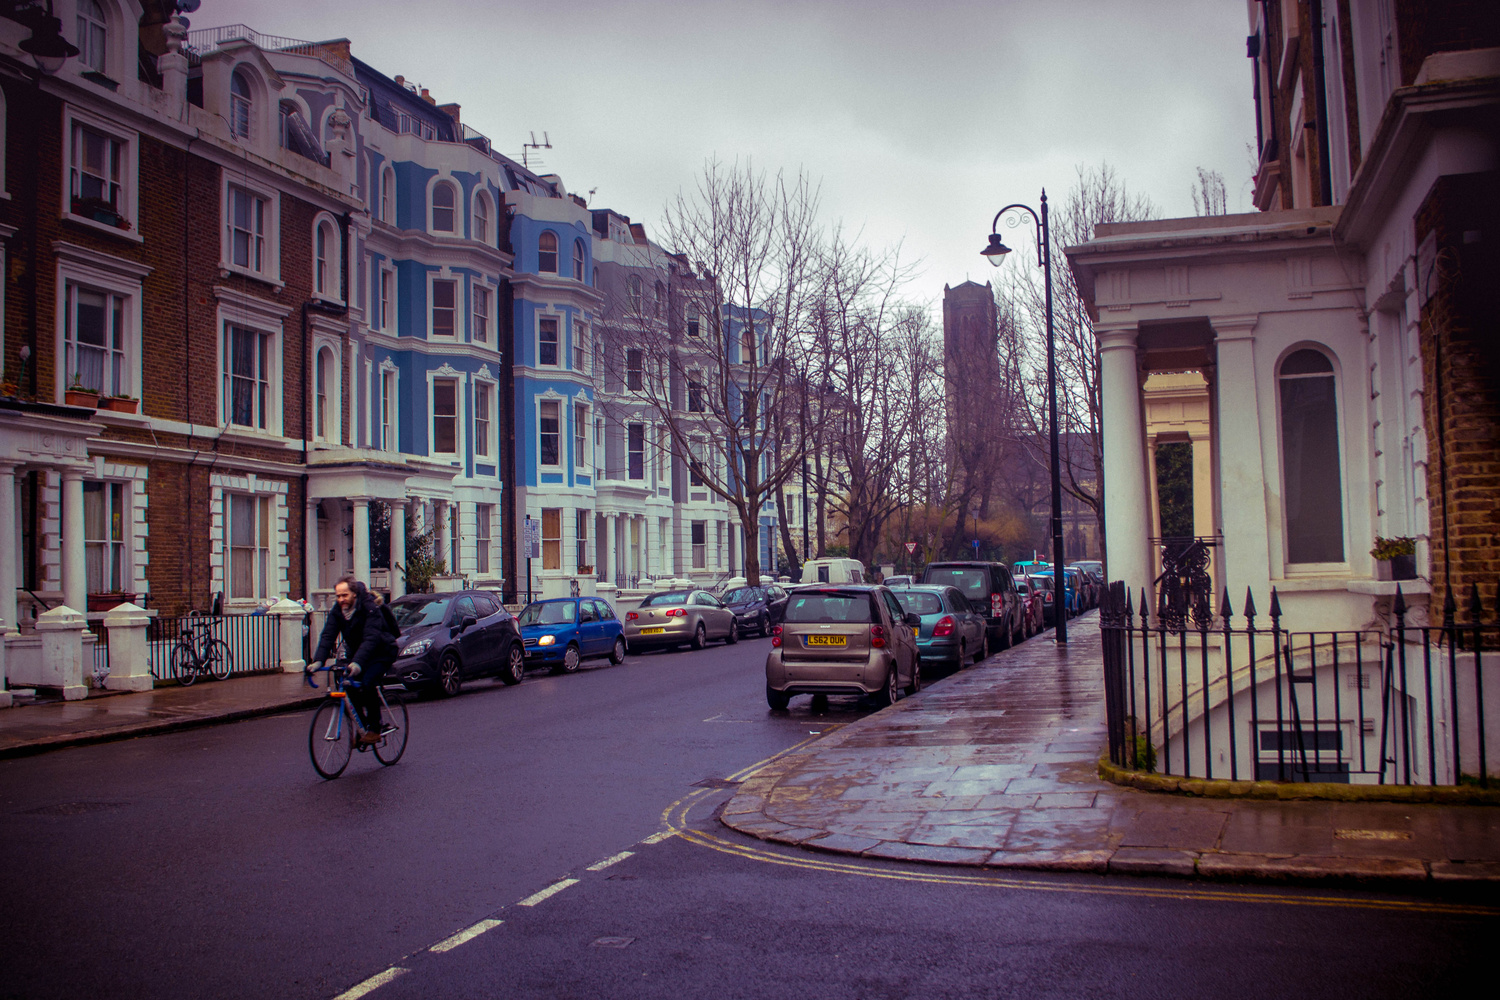 Notting Hill #2 by Tom Juggins